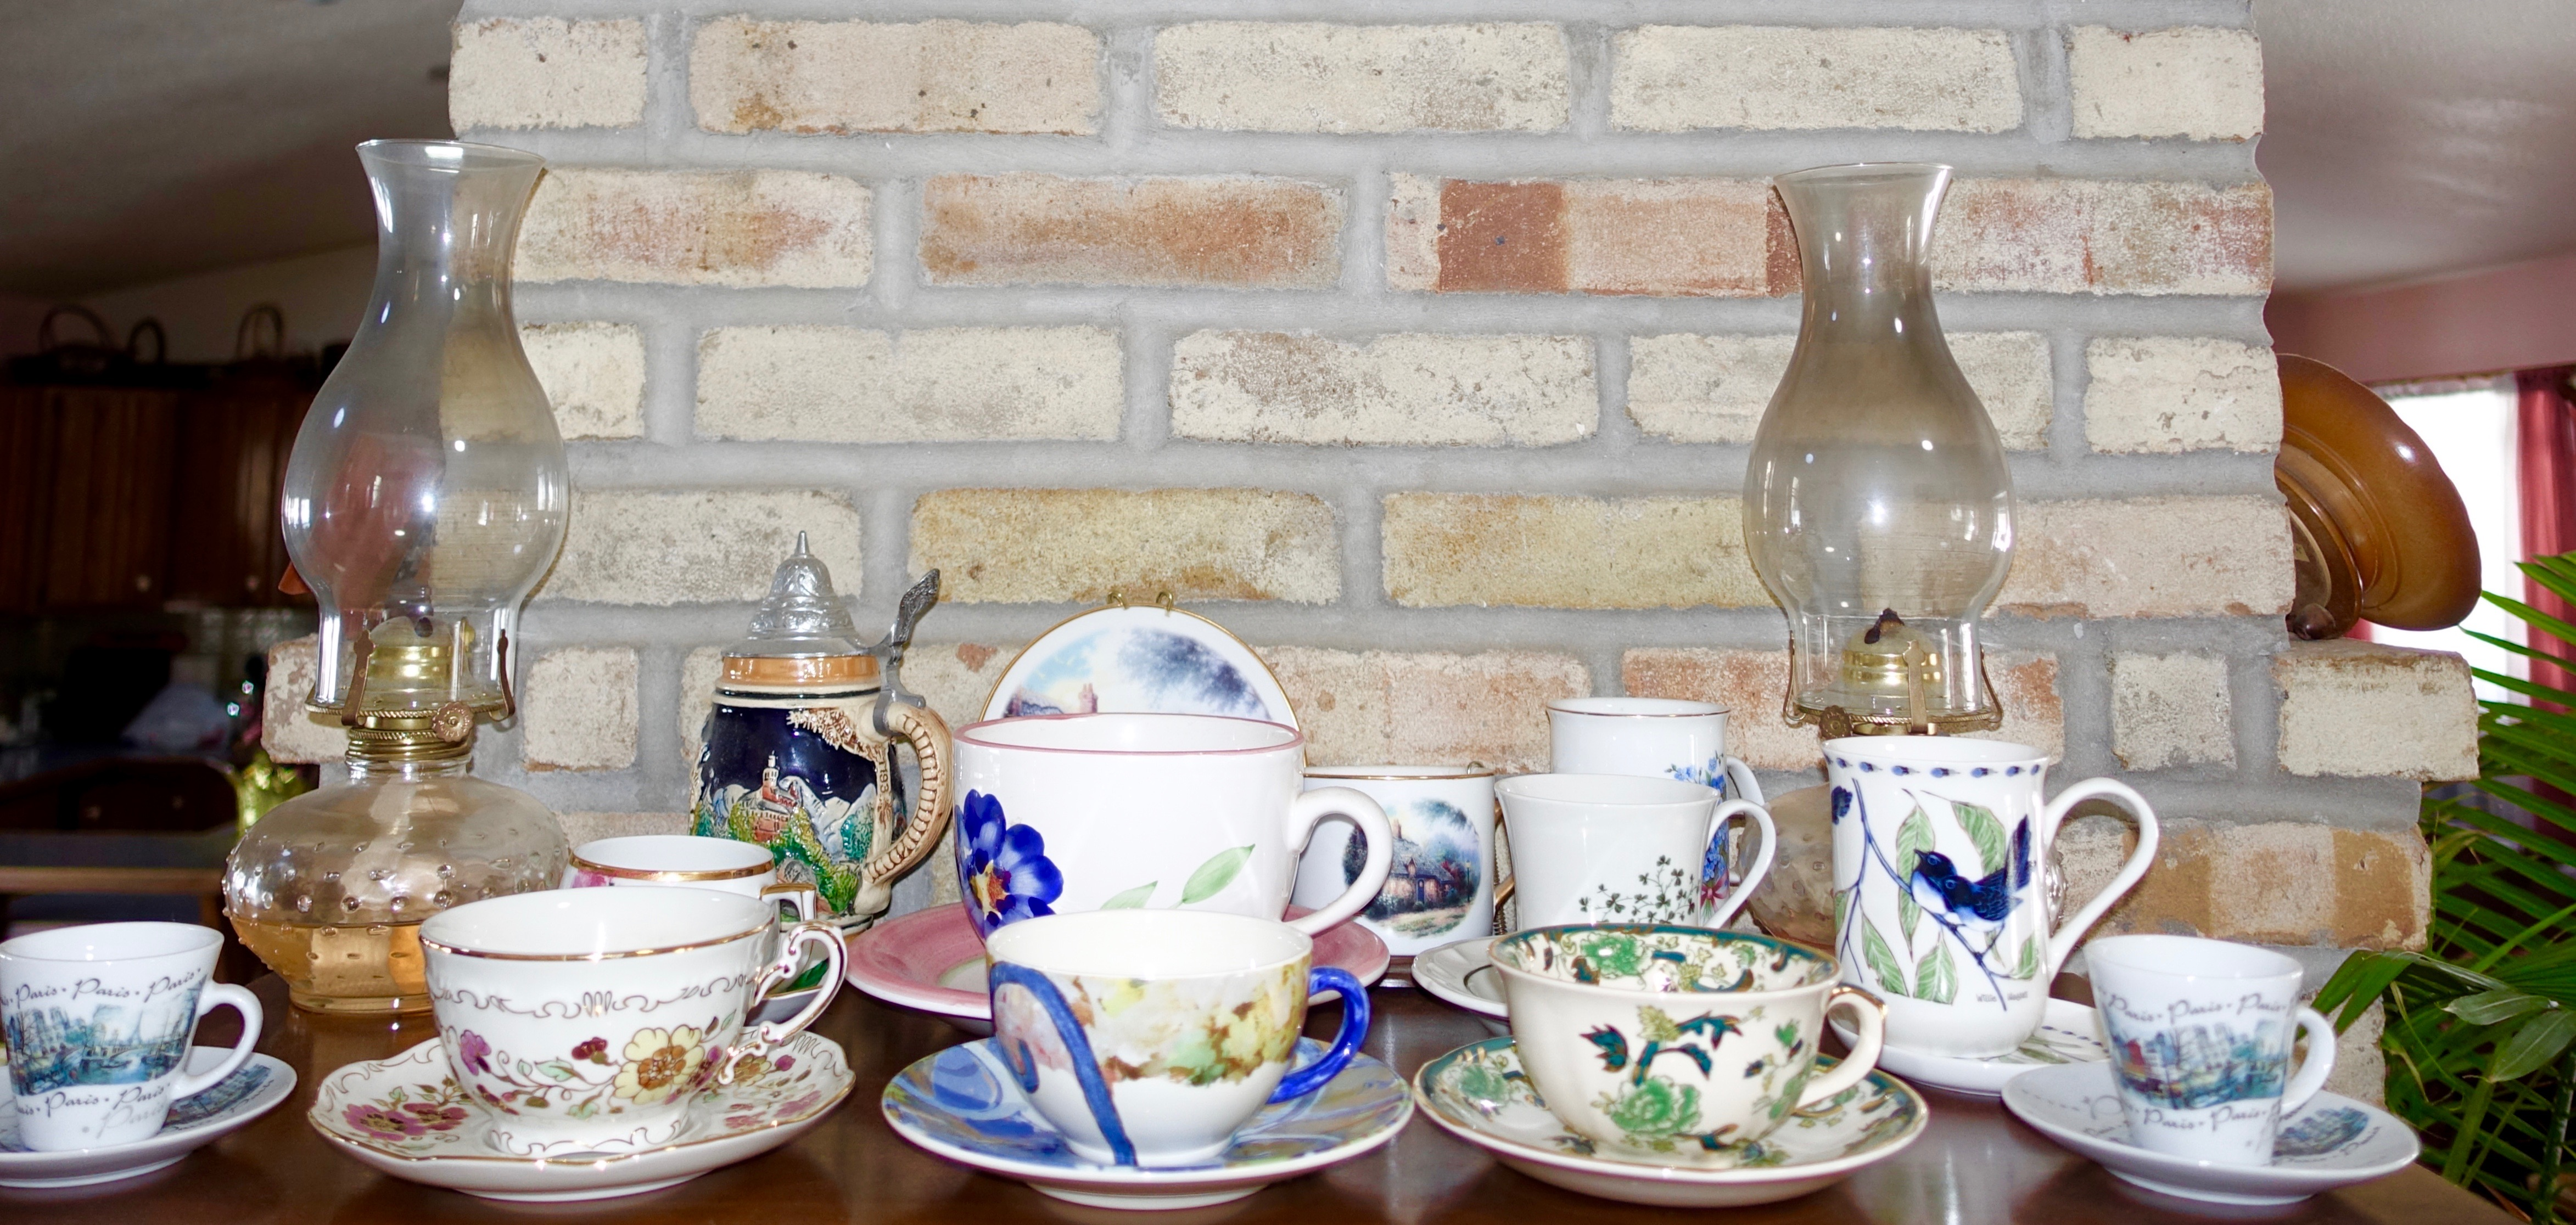 Teacups from Europe